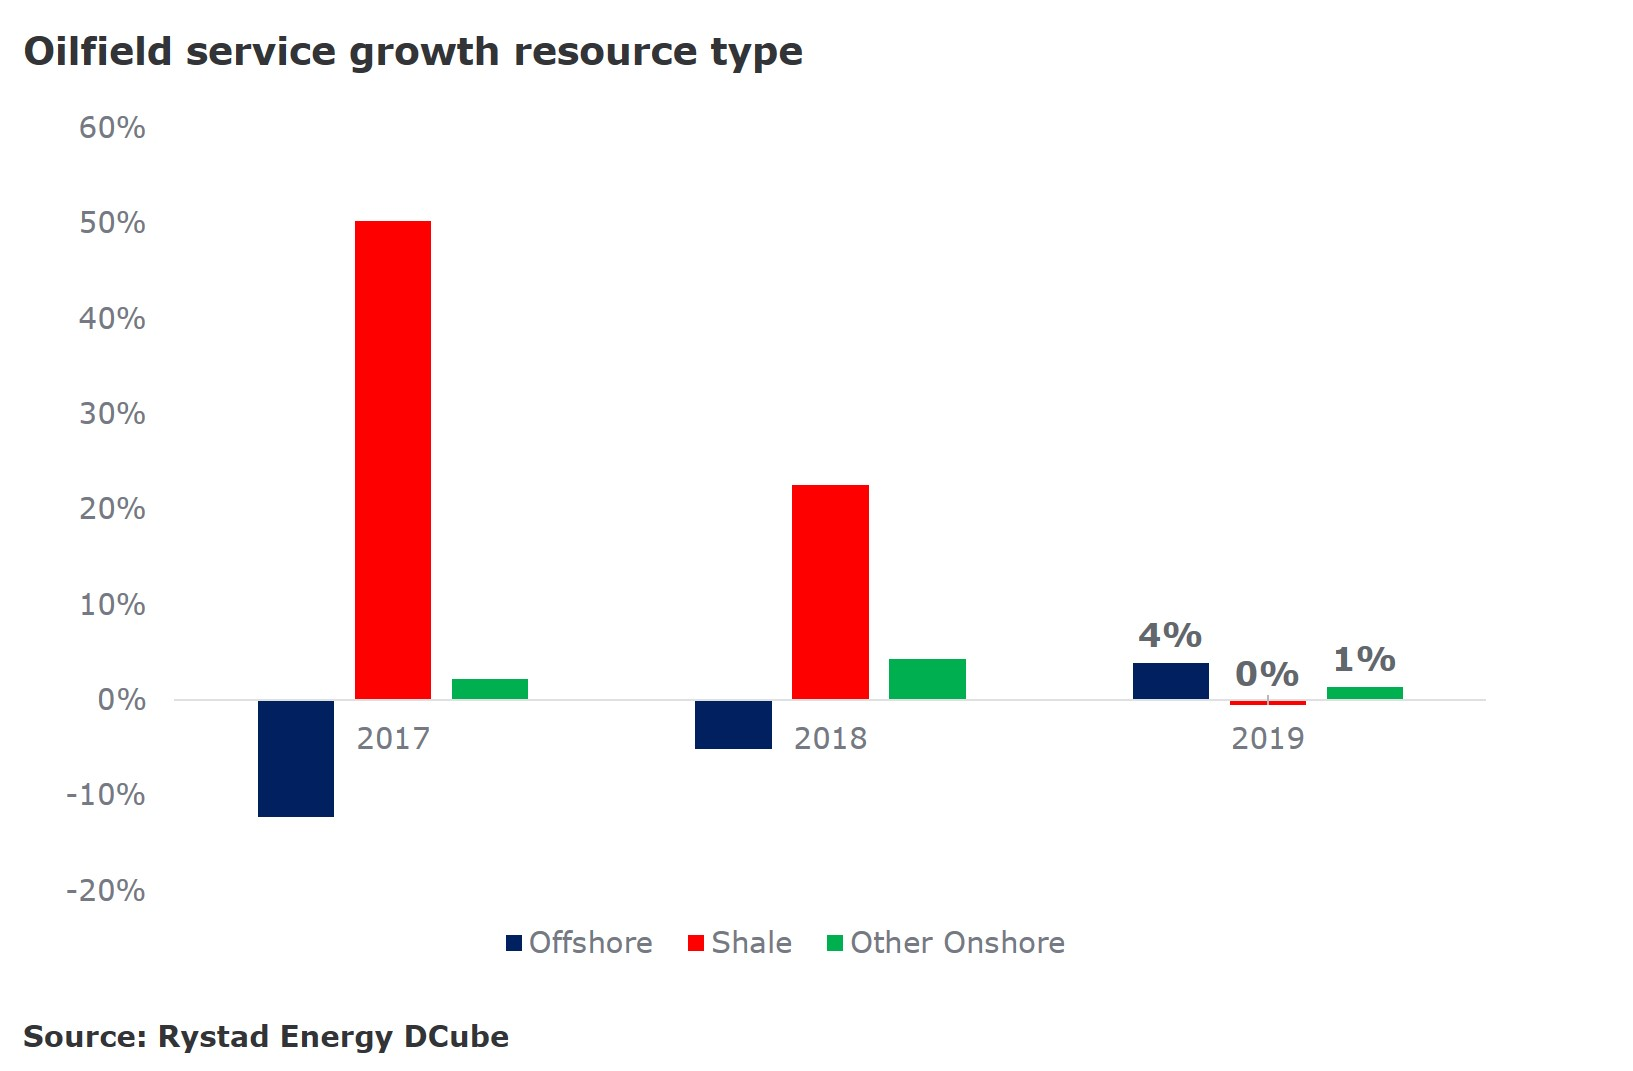 A bar chart showing the oilfield service growth resource type. Source: Rystad Energy DCube